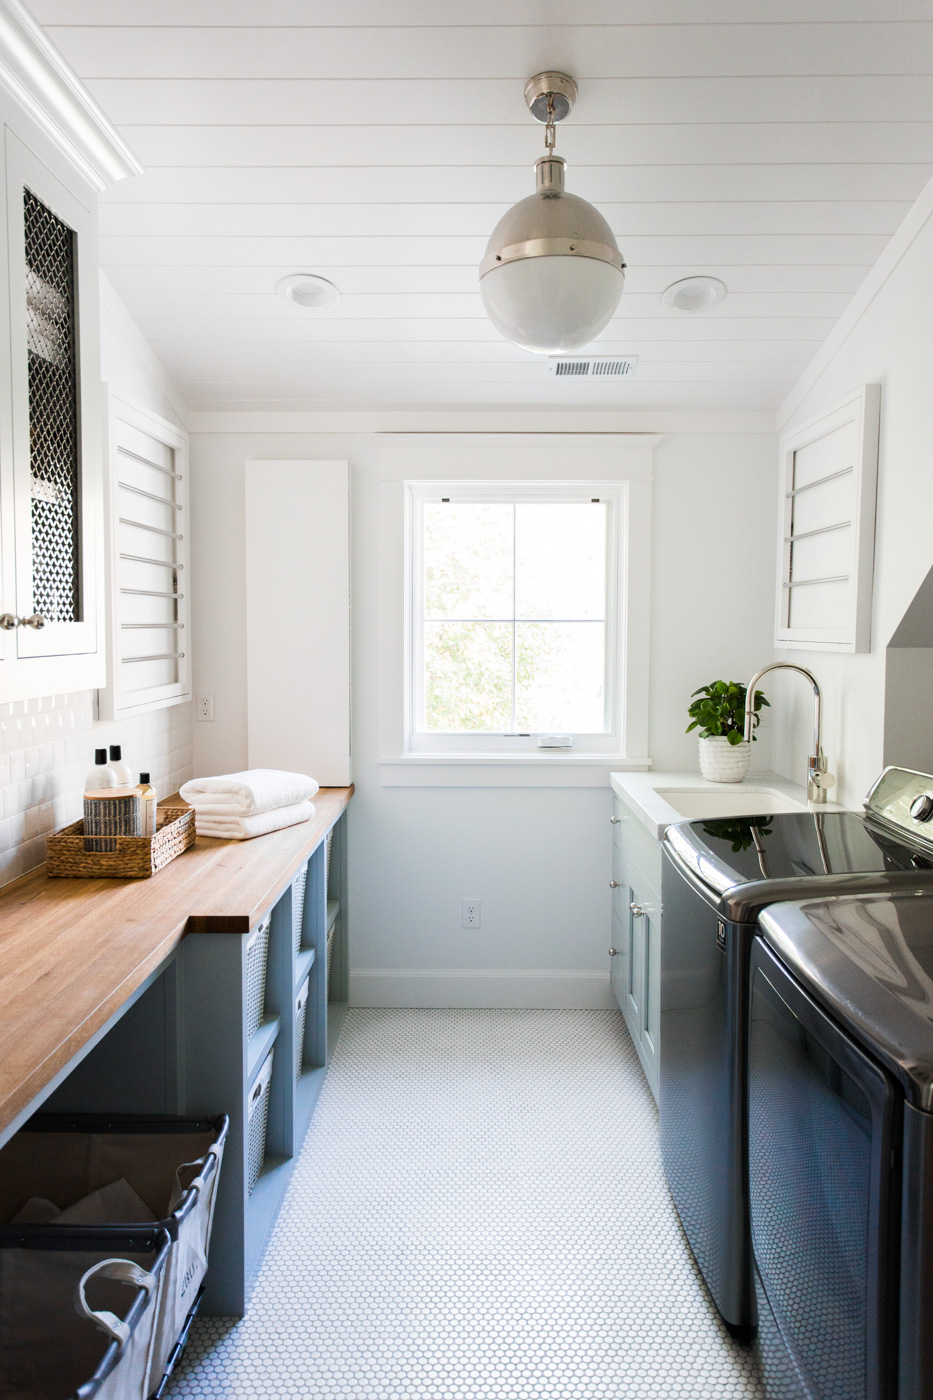 Green cabinets with butcher blog, white penny tile laundry room || Studio McGee